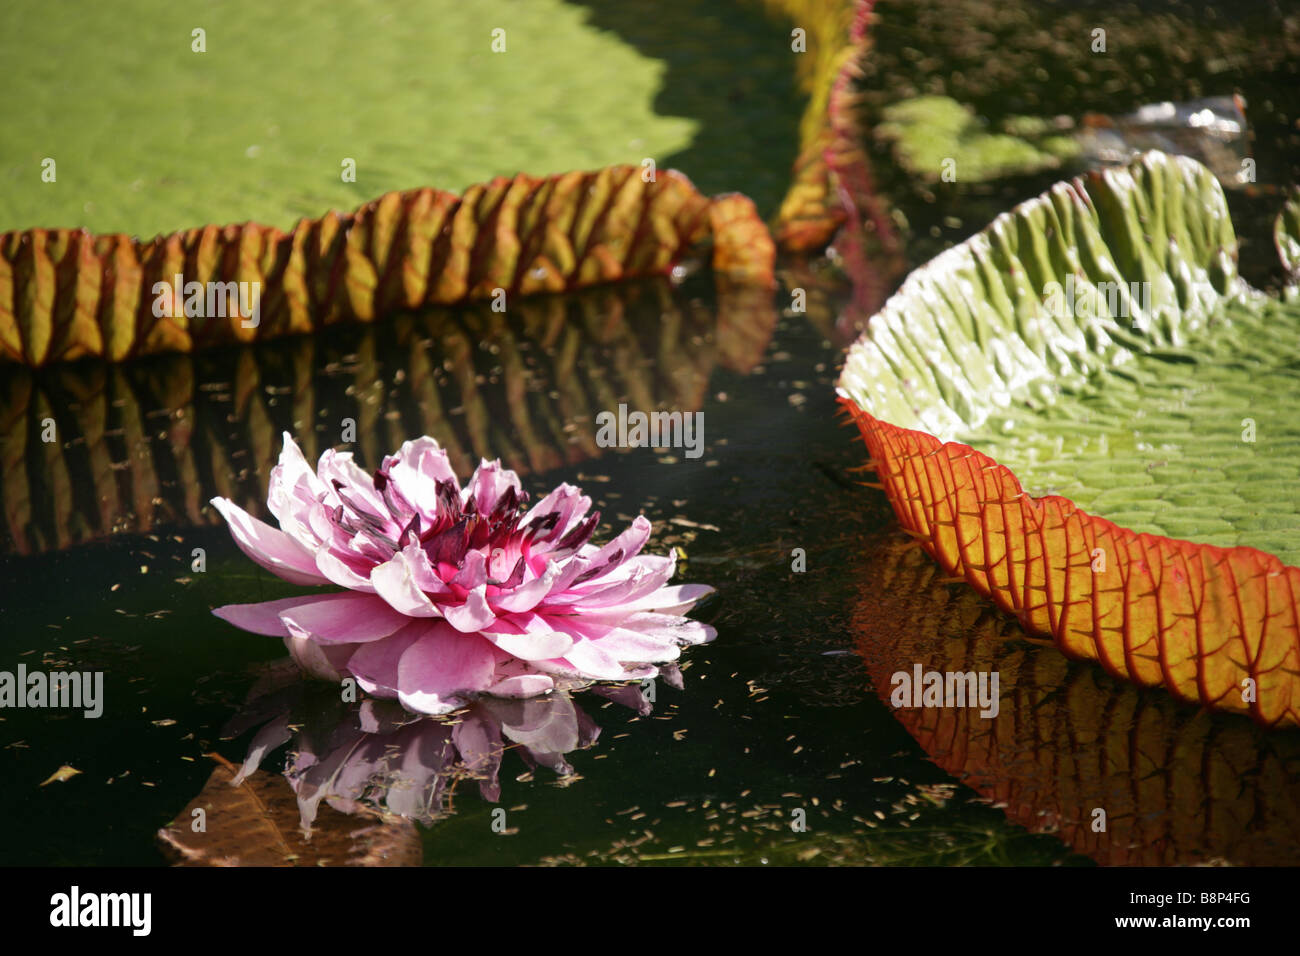 Flower and giant water lily of the Victoria Regia otherwise know as the Amazonica, located in Mauritius's Pamplemousses Garden. Stock Photo